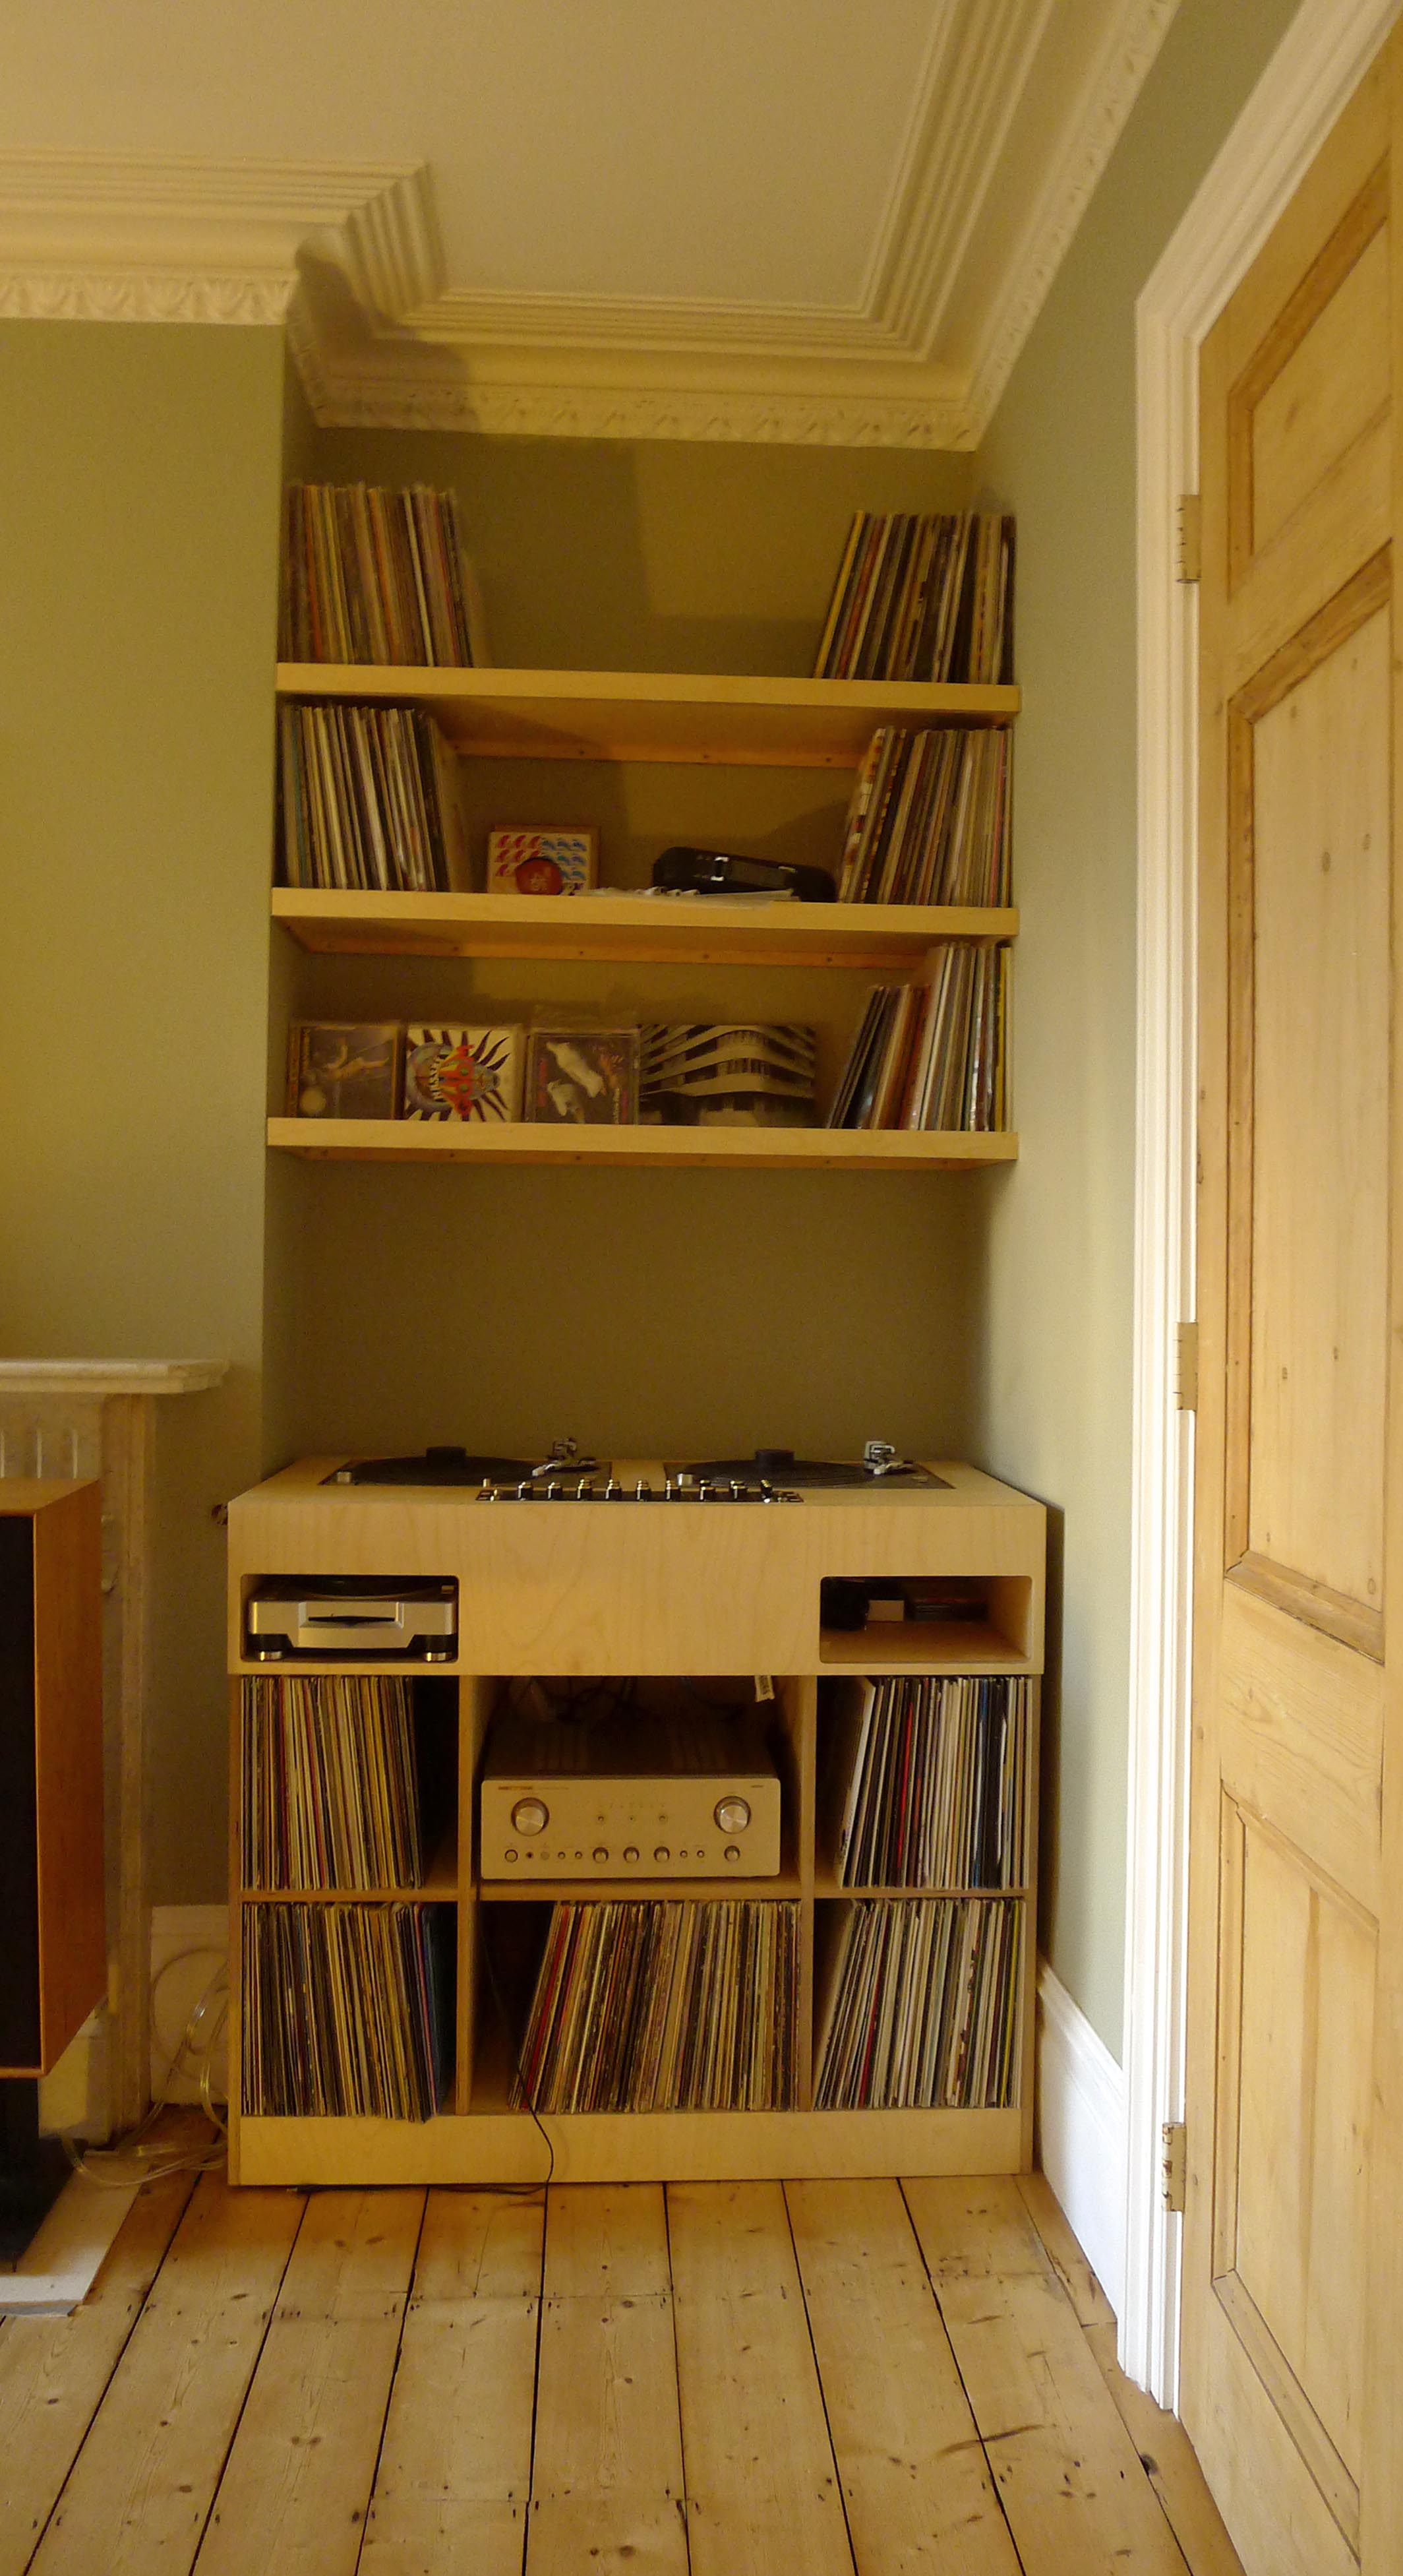 DJ console table with alcove shelving | Karl REES